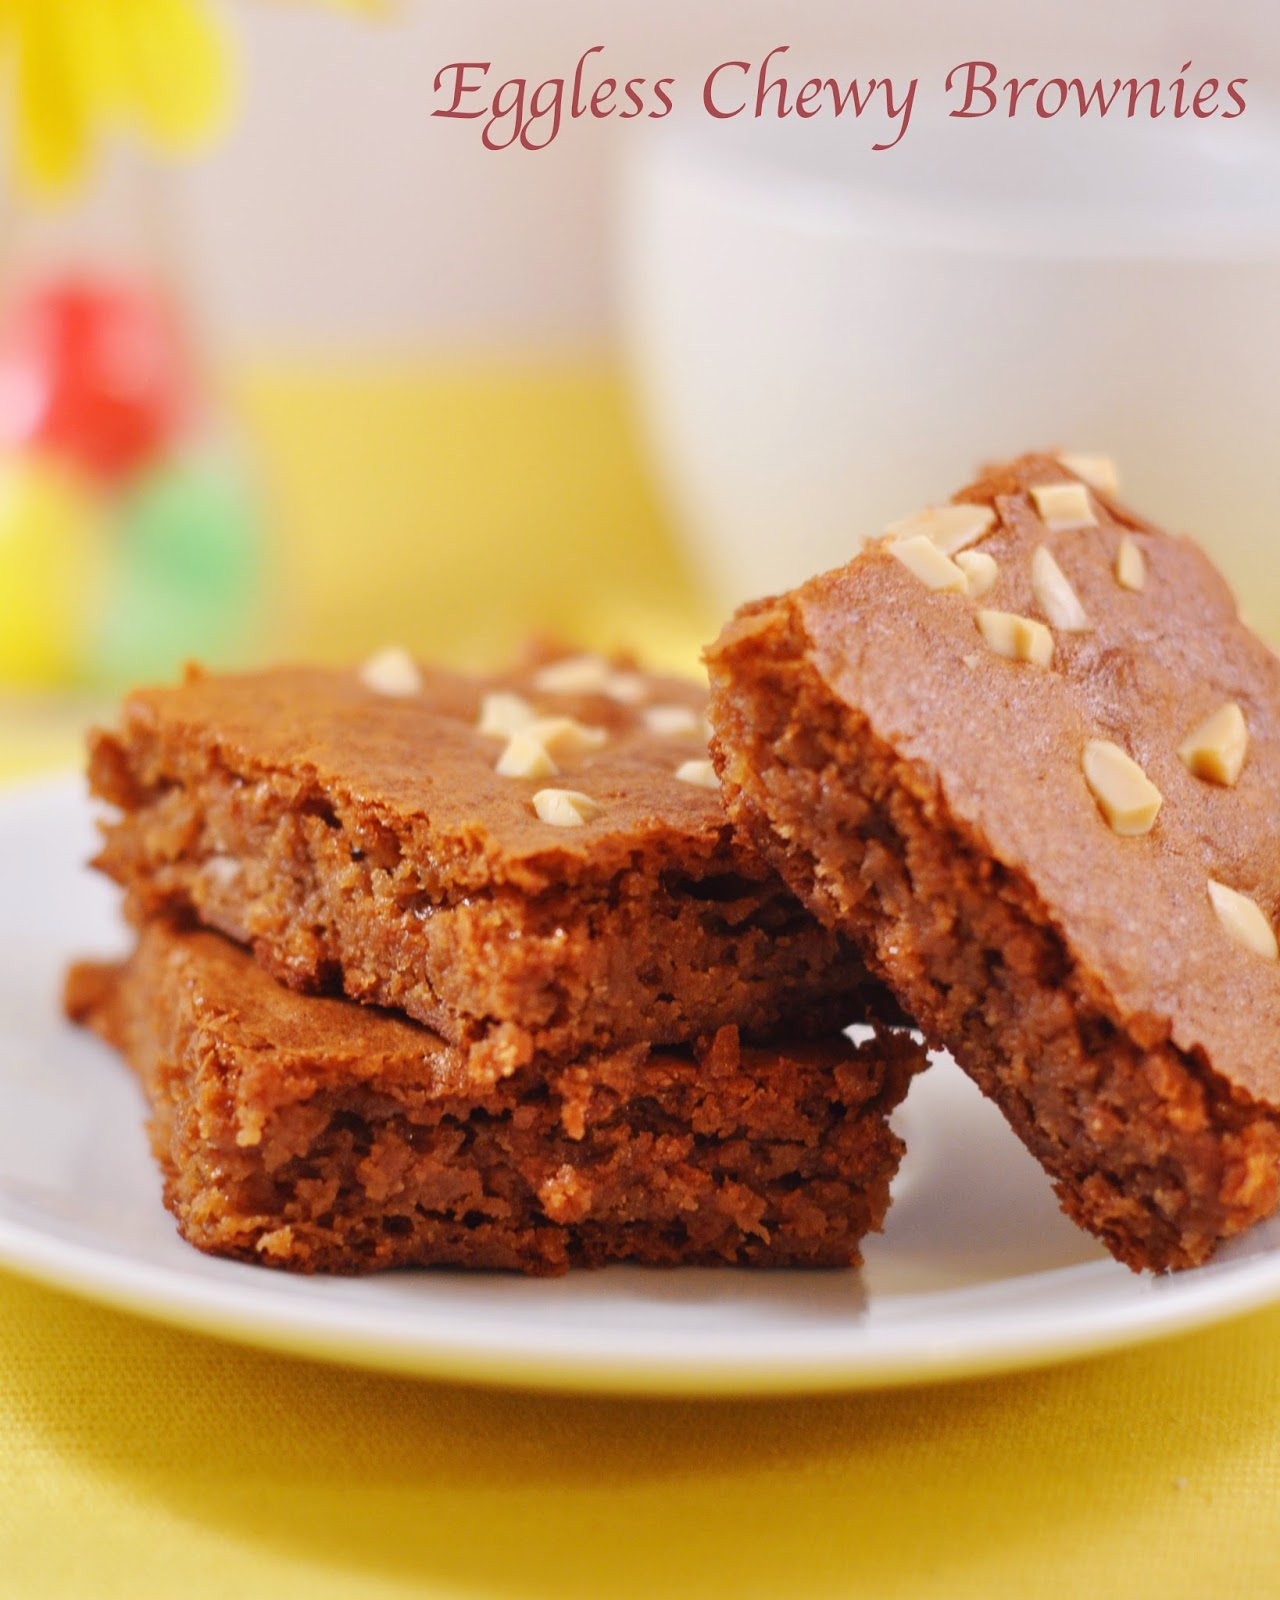 Eggless Chewy brownies